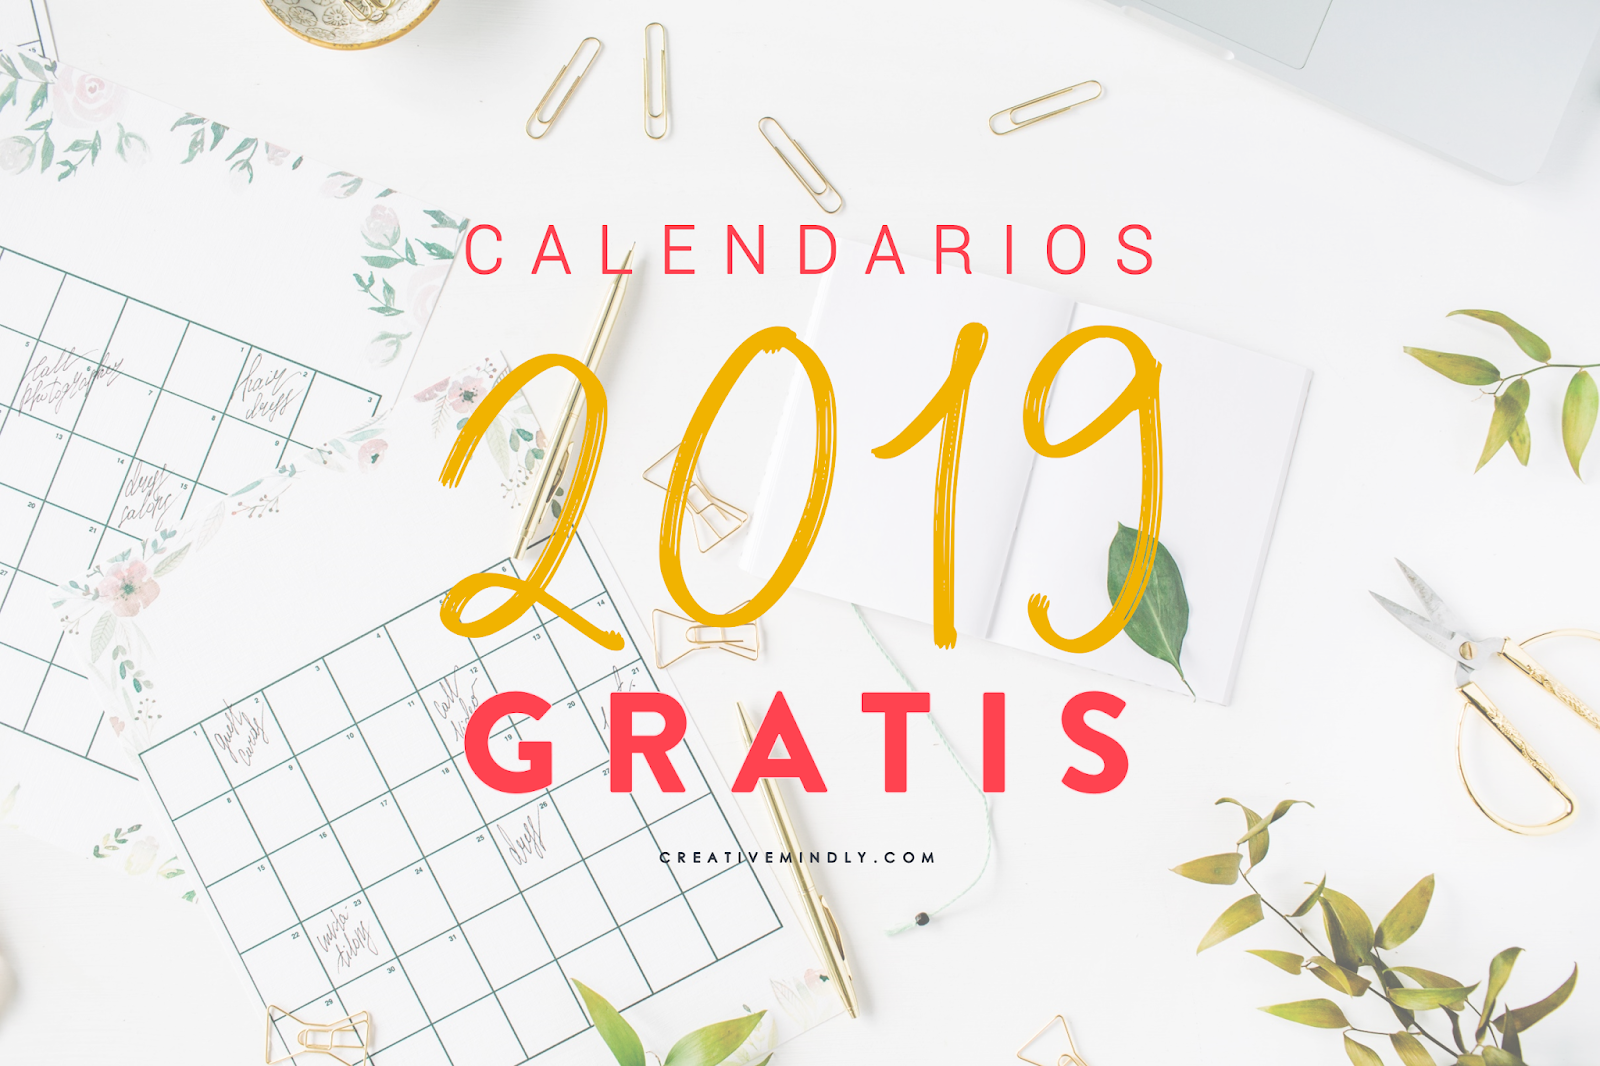 Creative Mindly: Calendarios imprimibles 2019